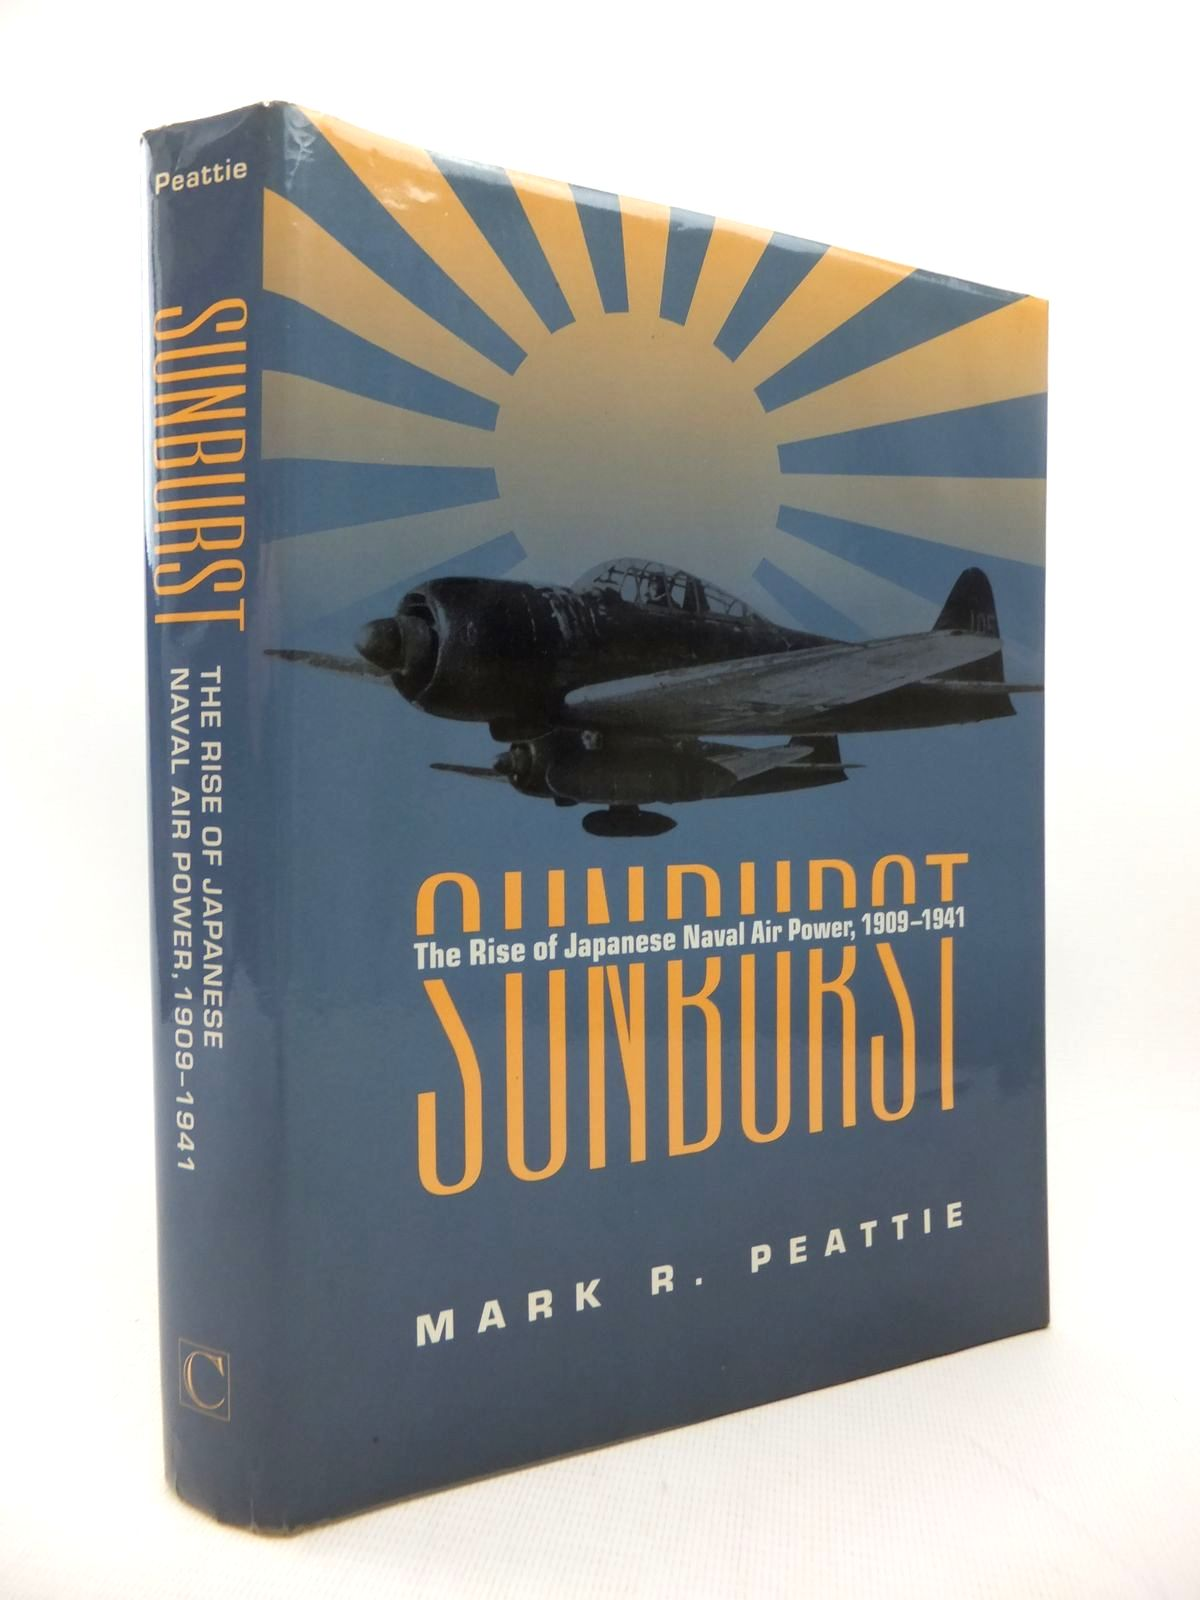 Photo of SUNBURST THE RISE OF JAPANESE NAVAL AIR POWER 1909-1941 written by Peattie, Mark R. published by Chatham Publishing (STOCK CODE: 1814219)  for sale by Stella & Rose's Books